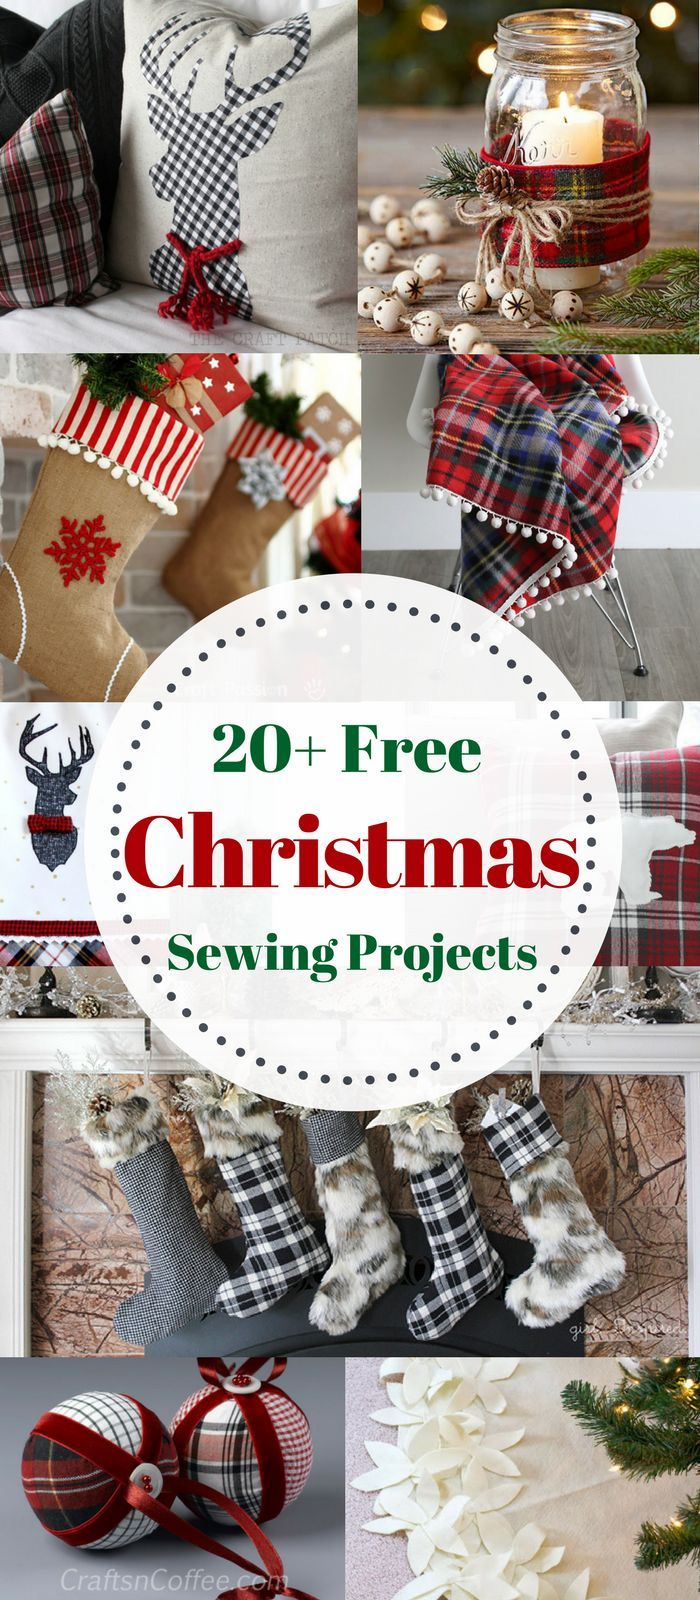 20 christmas sewing projects free pattern tutorials and patterns 20 christmas sewing projects jeuxipadfo Choice Image